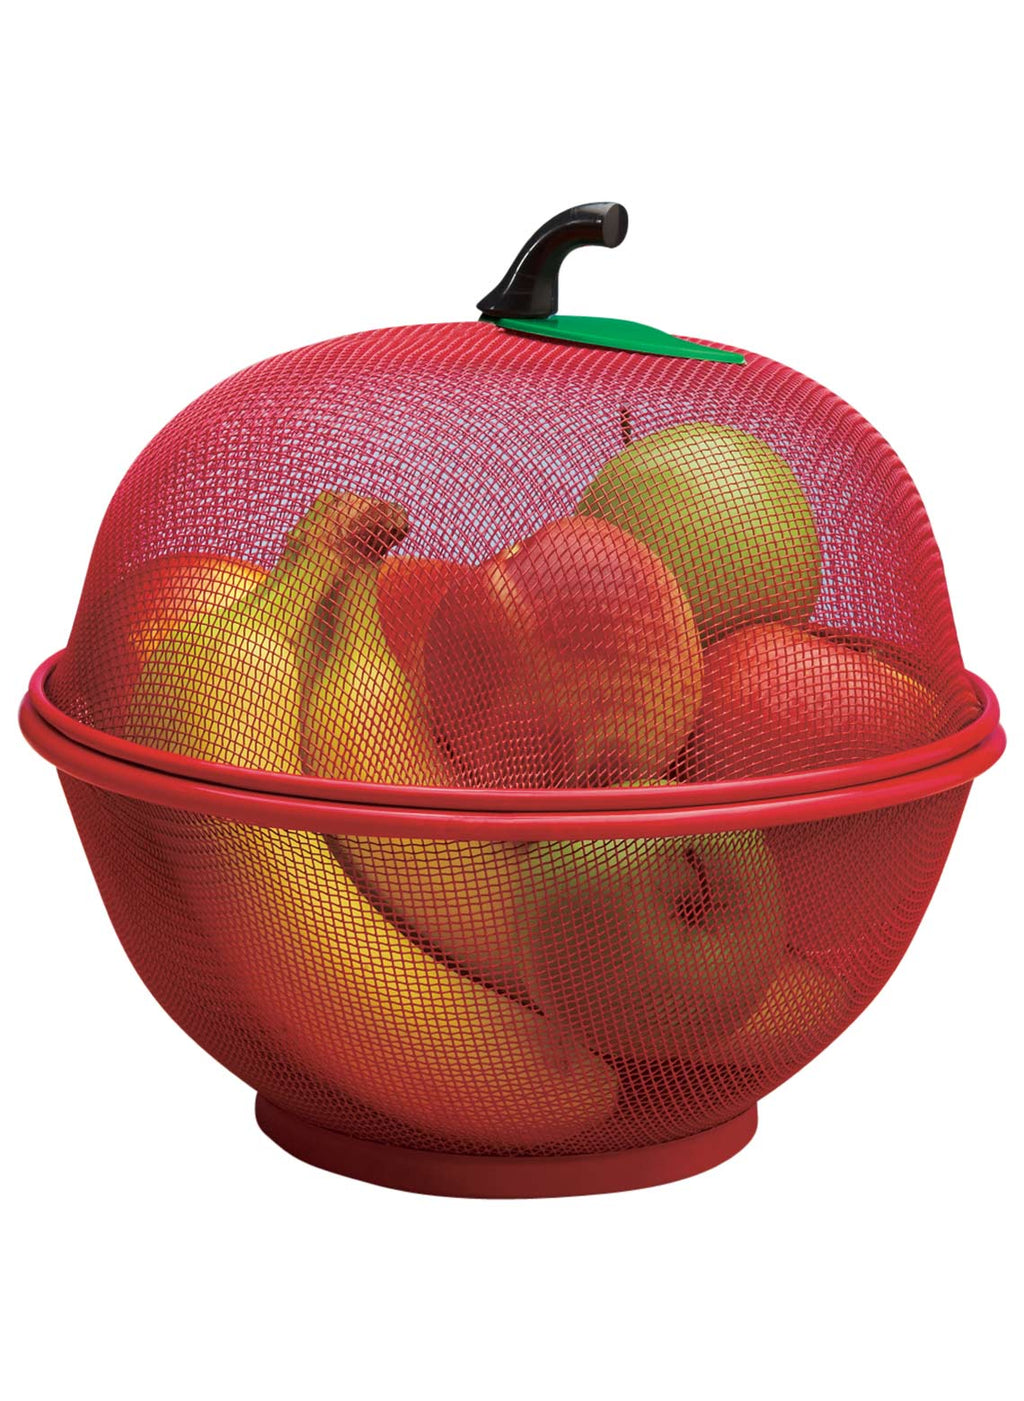 Boxania Apple Shape Net Basket for Fruits Vegetables Kitchen Basket Insect Proof Drain Wash (27 CM) Assorted Color